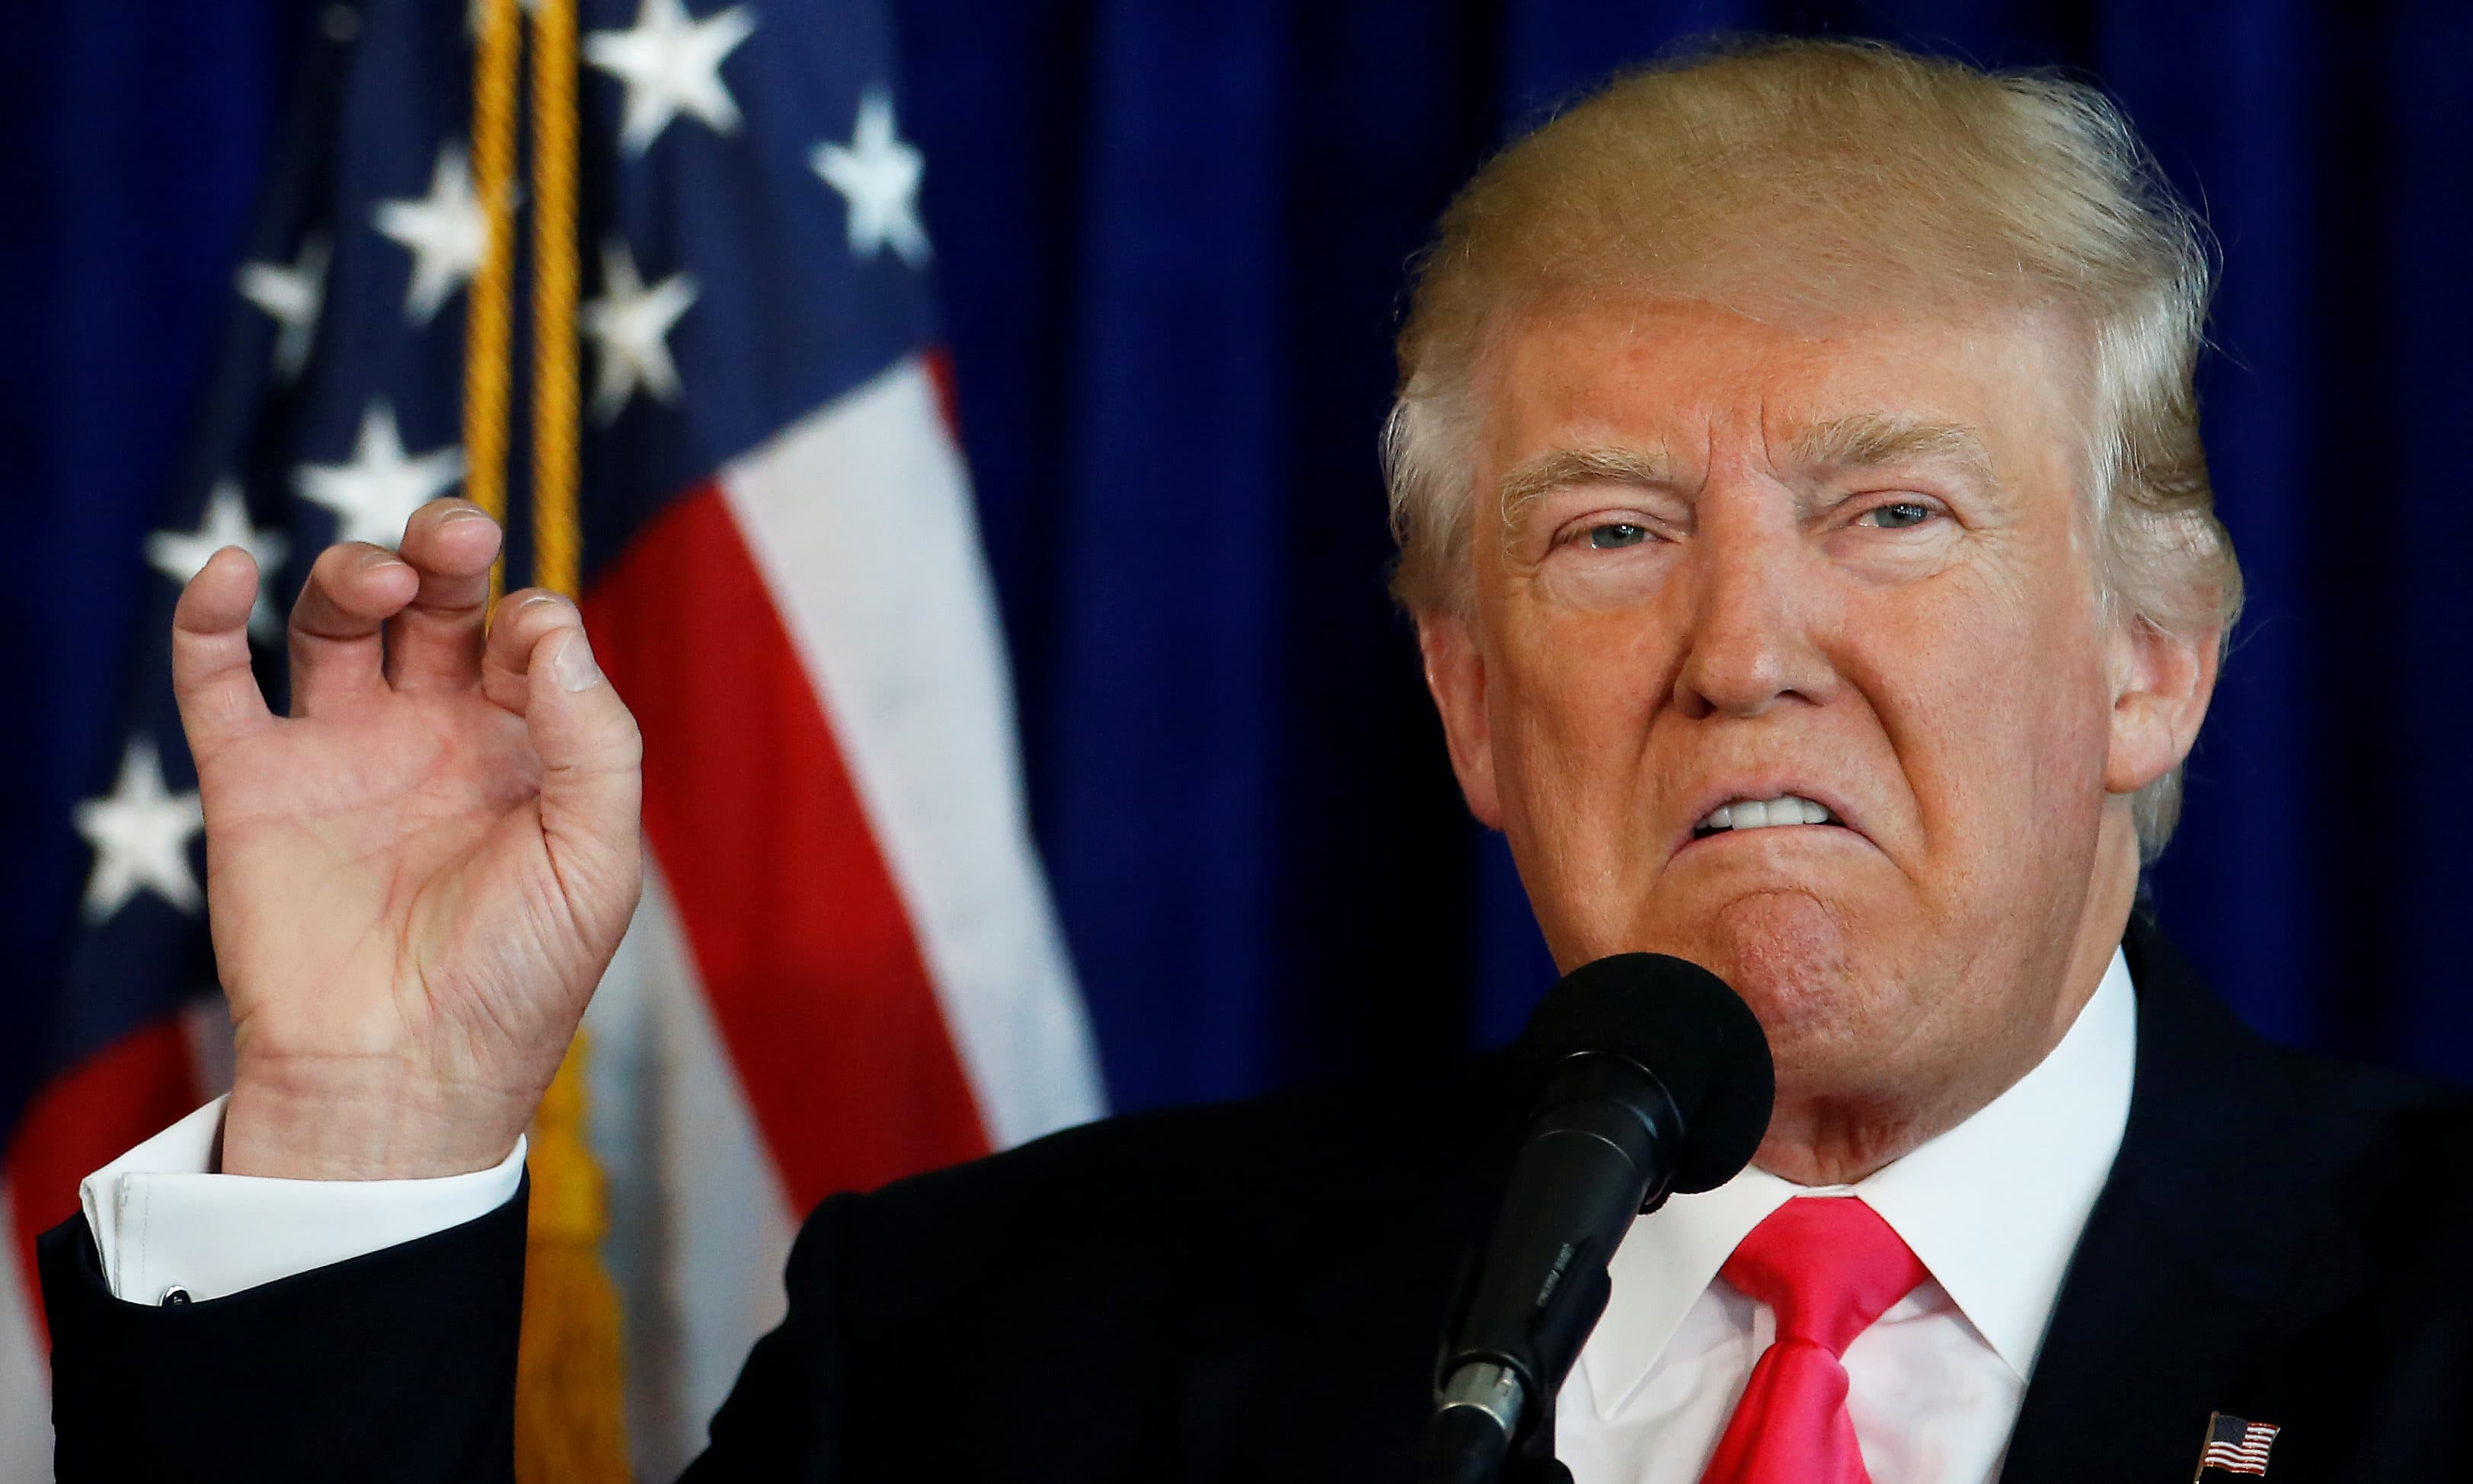 Clinton's camp alleges Trump of encouraging foreign espionage